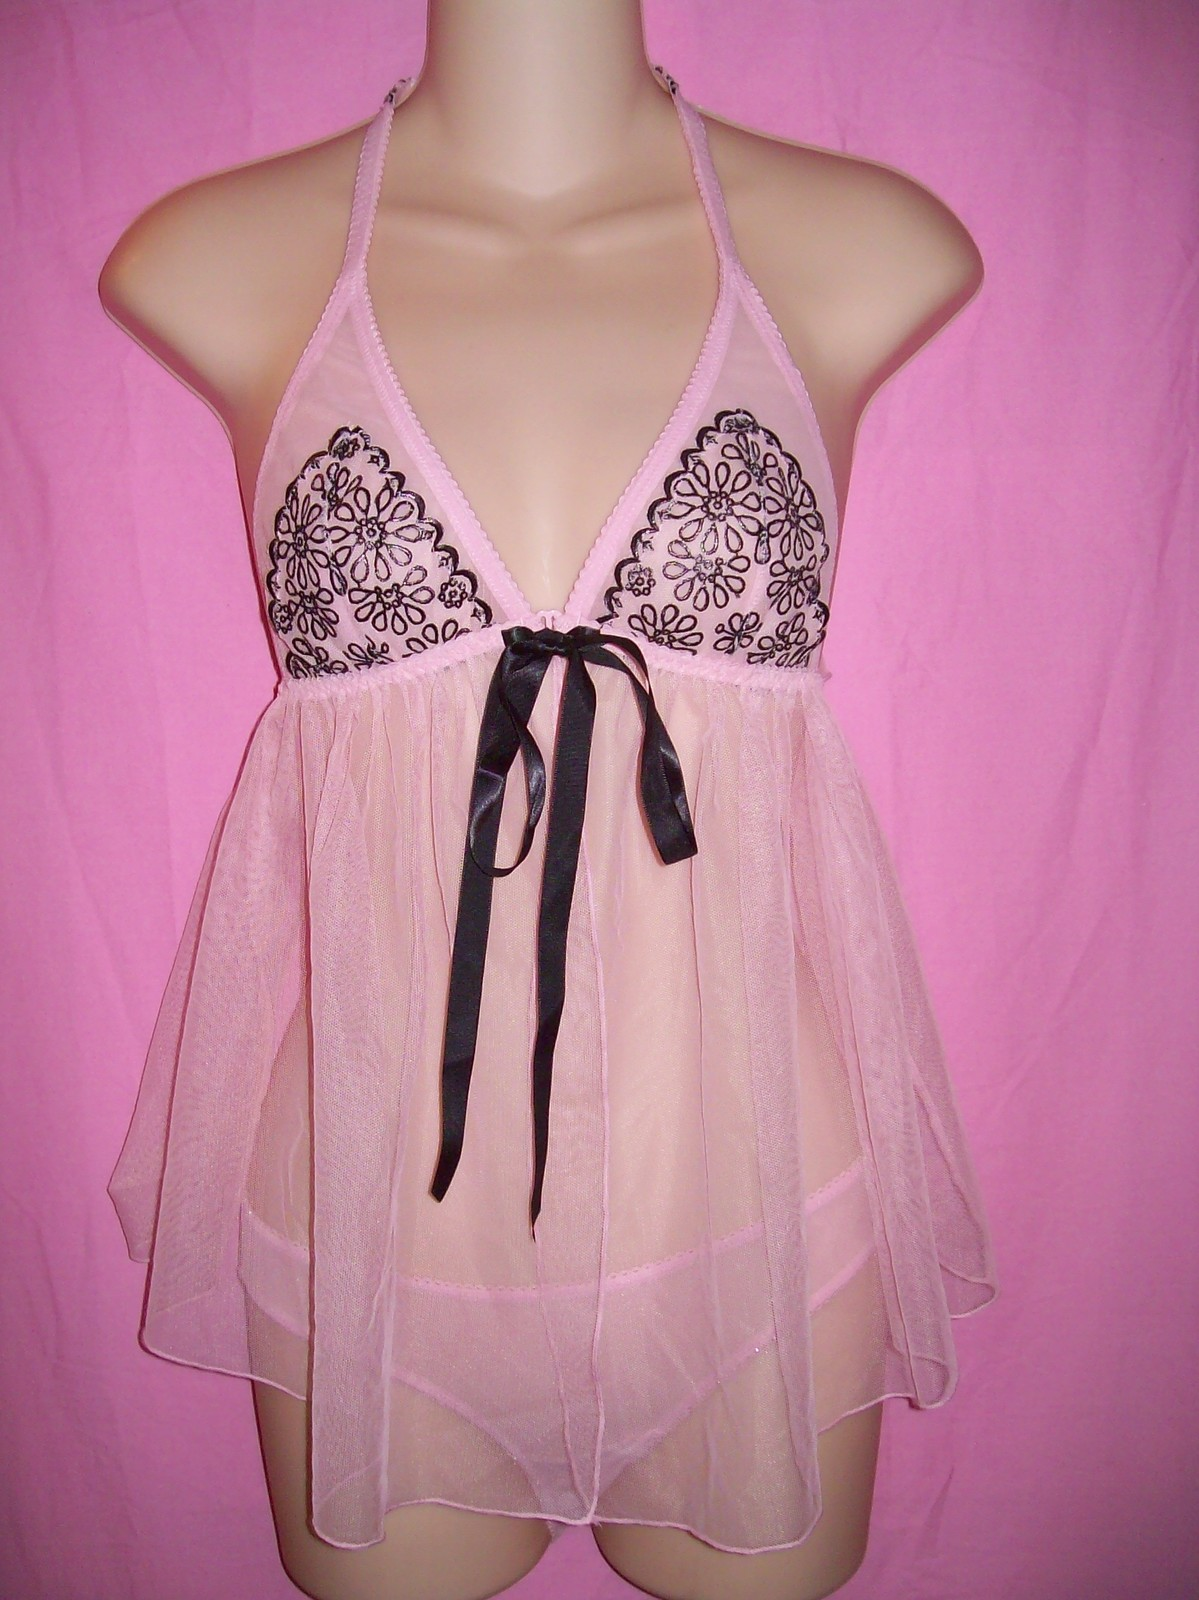 Primary image for Victoria's Secret Gorgeous Halter Babydoll with Cup Embroidery & Bikini Lingerie